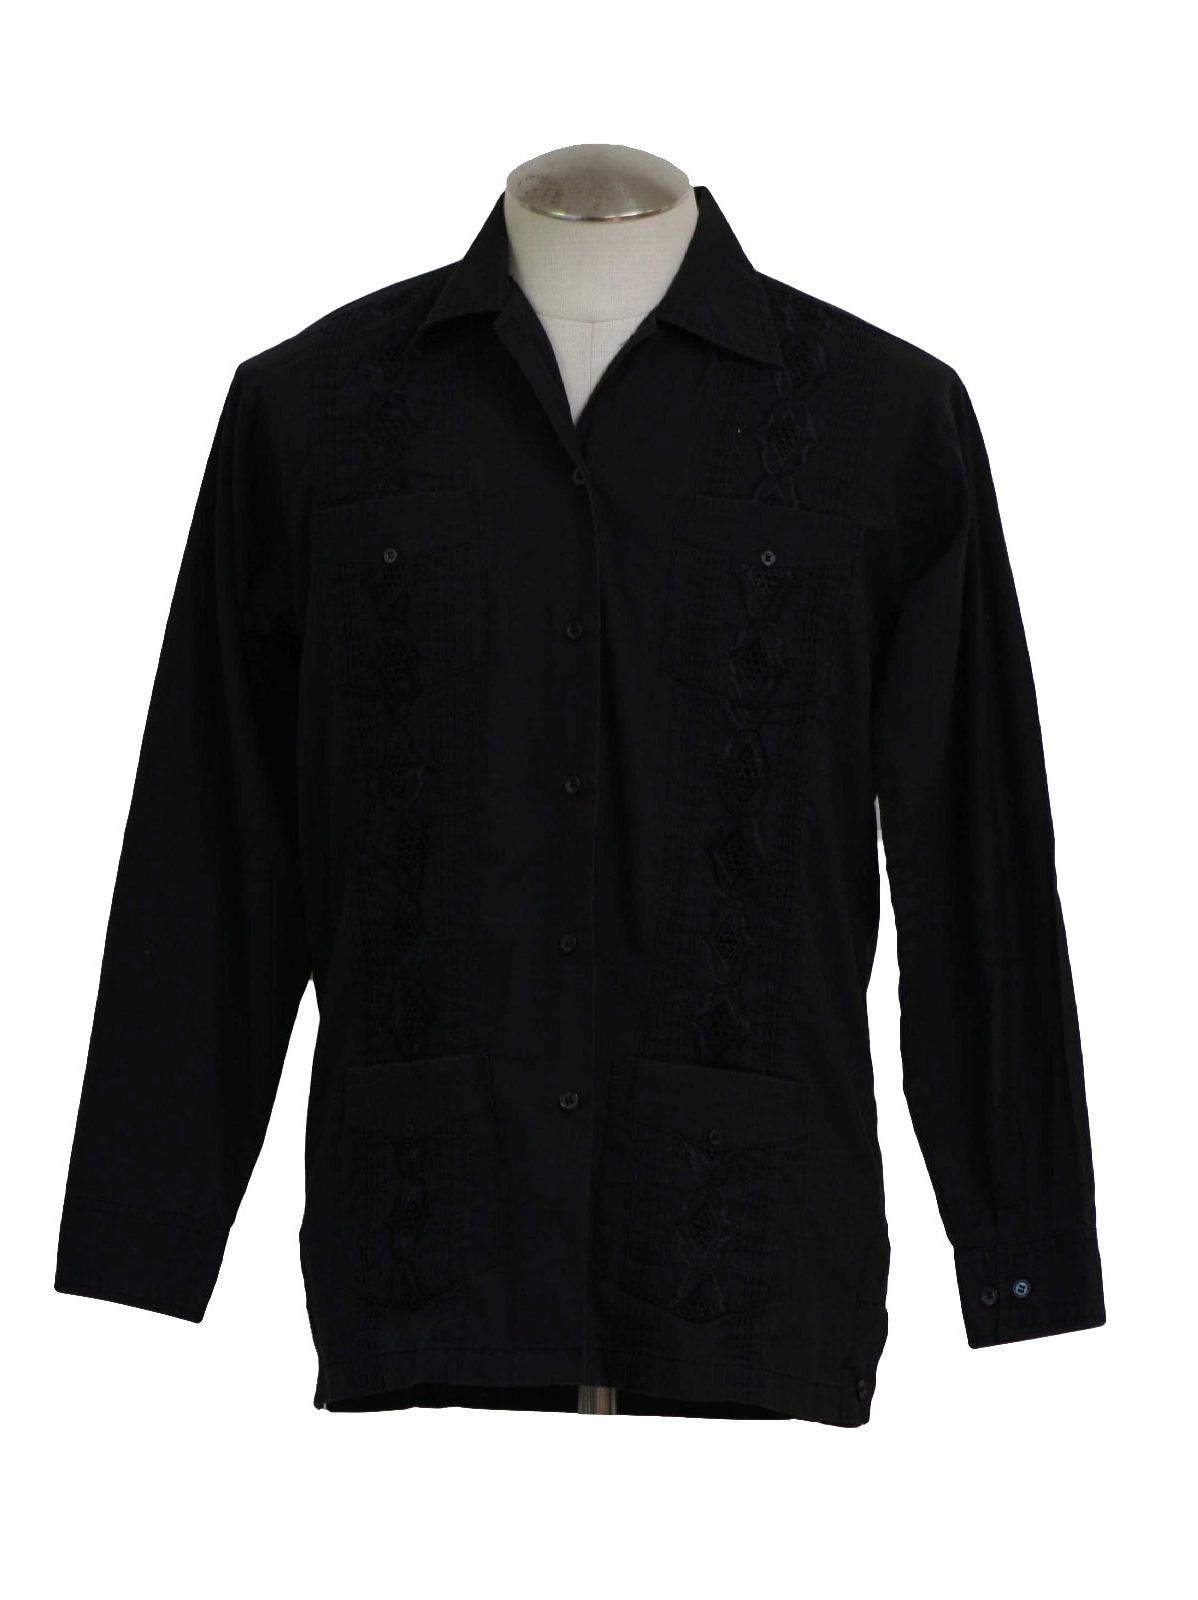 80s -Chic Elegant- Mens black